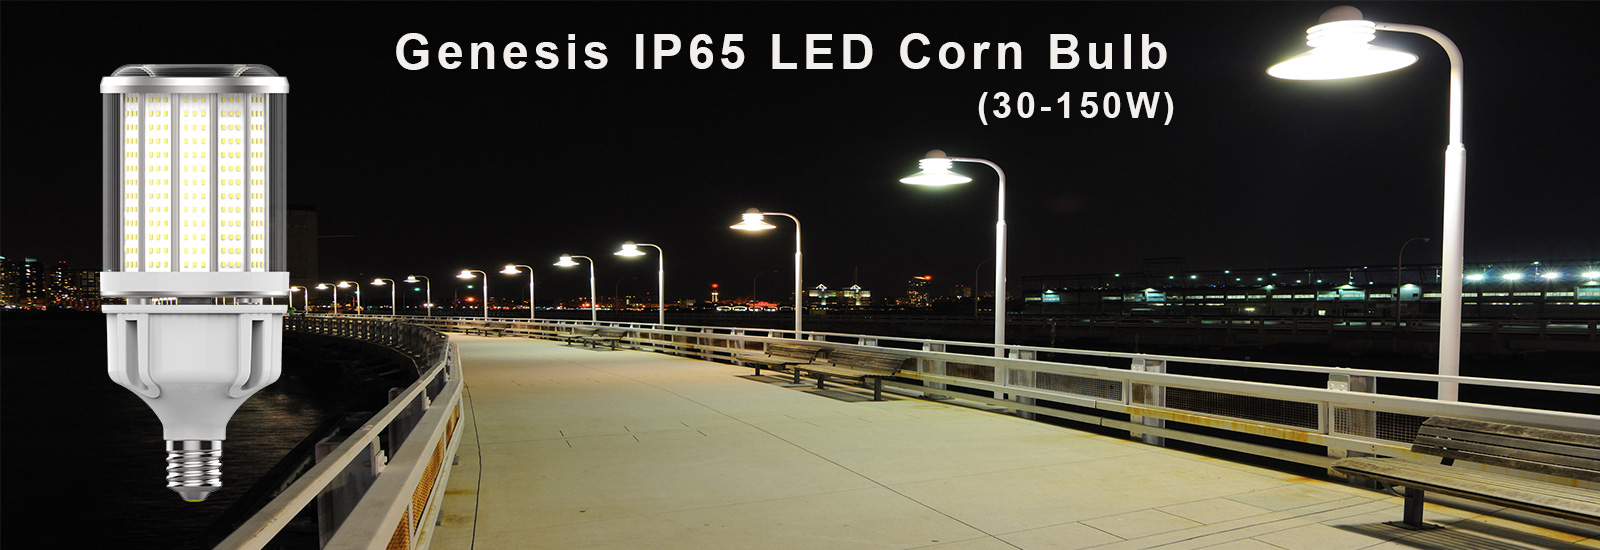 Genesis IP65 LED corn bulb